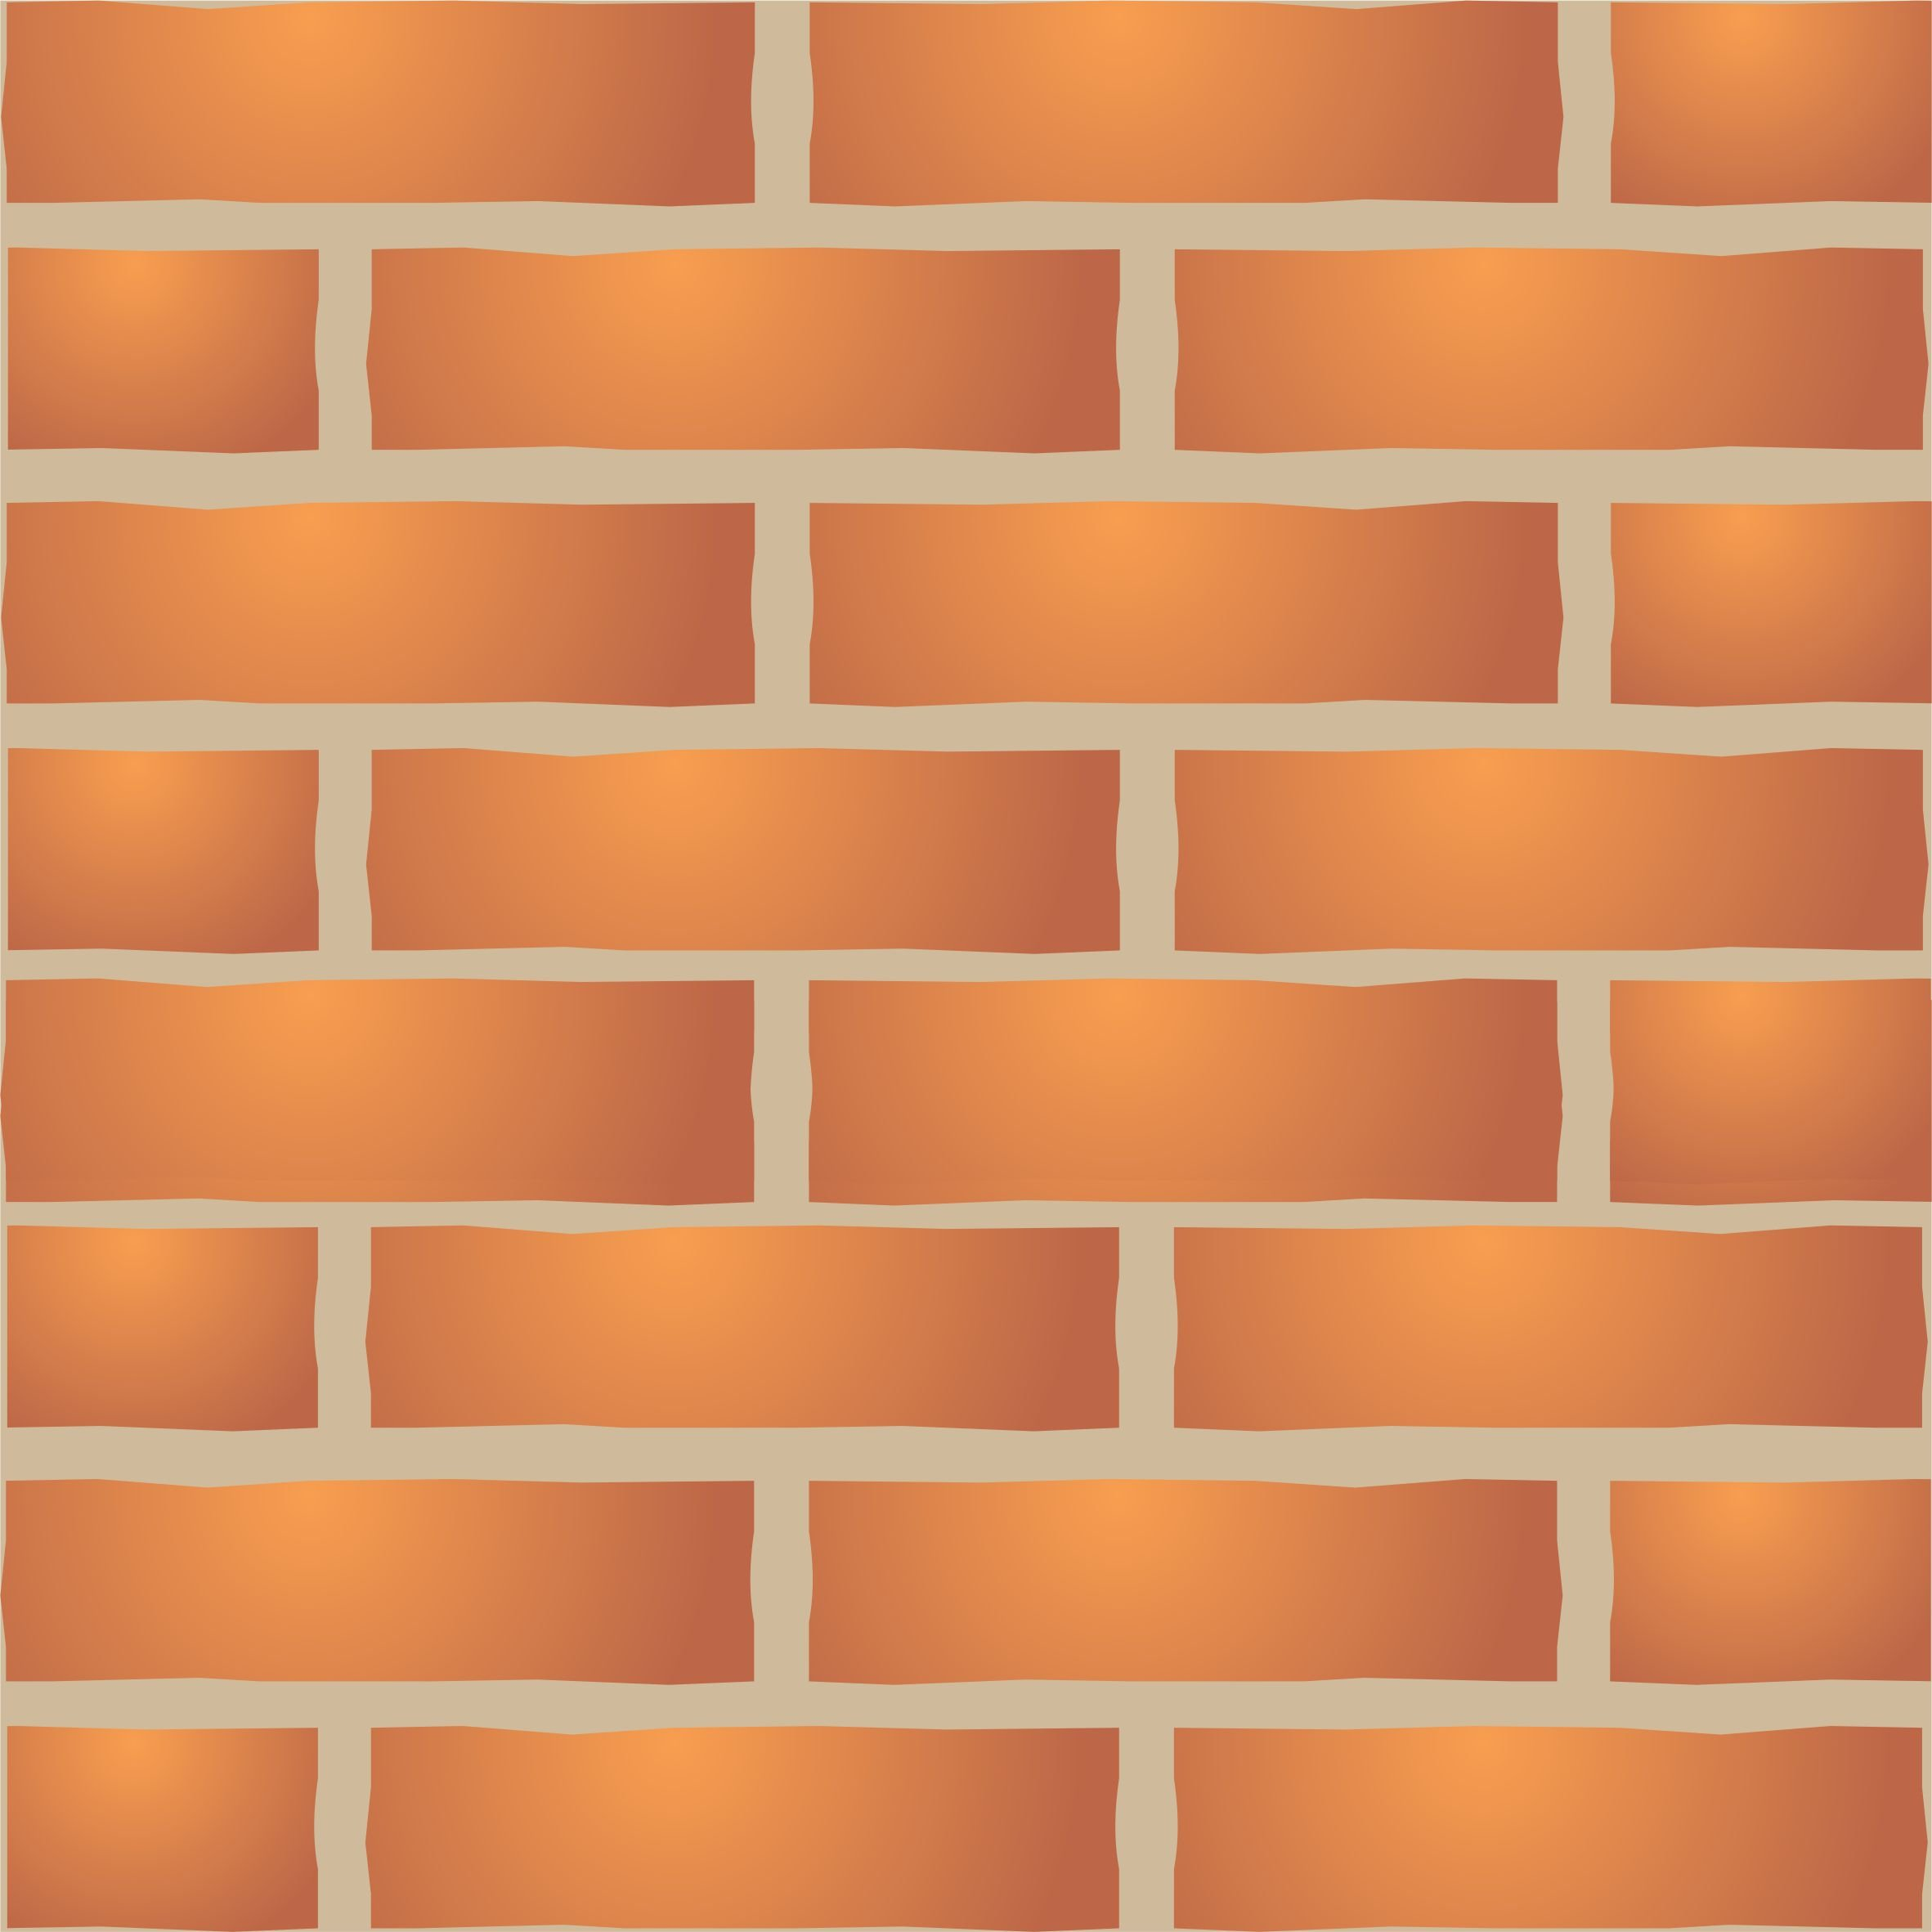 Brick Wall Stencil (size 13''w x 8.5''h) Reusable Wall Stencils for Painting - Best Quality Brick Wall Stencil Ideas - Use on Walls, Floors, Fabrics, Glass, Wood, Terracotta, and More... by Stencils for Walls